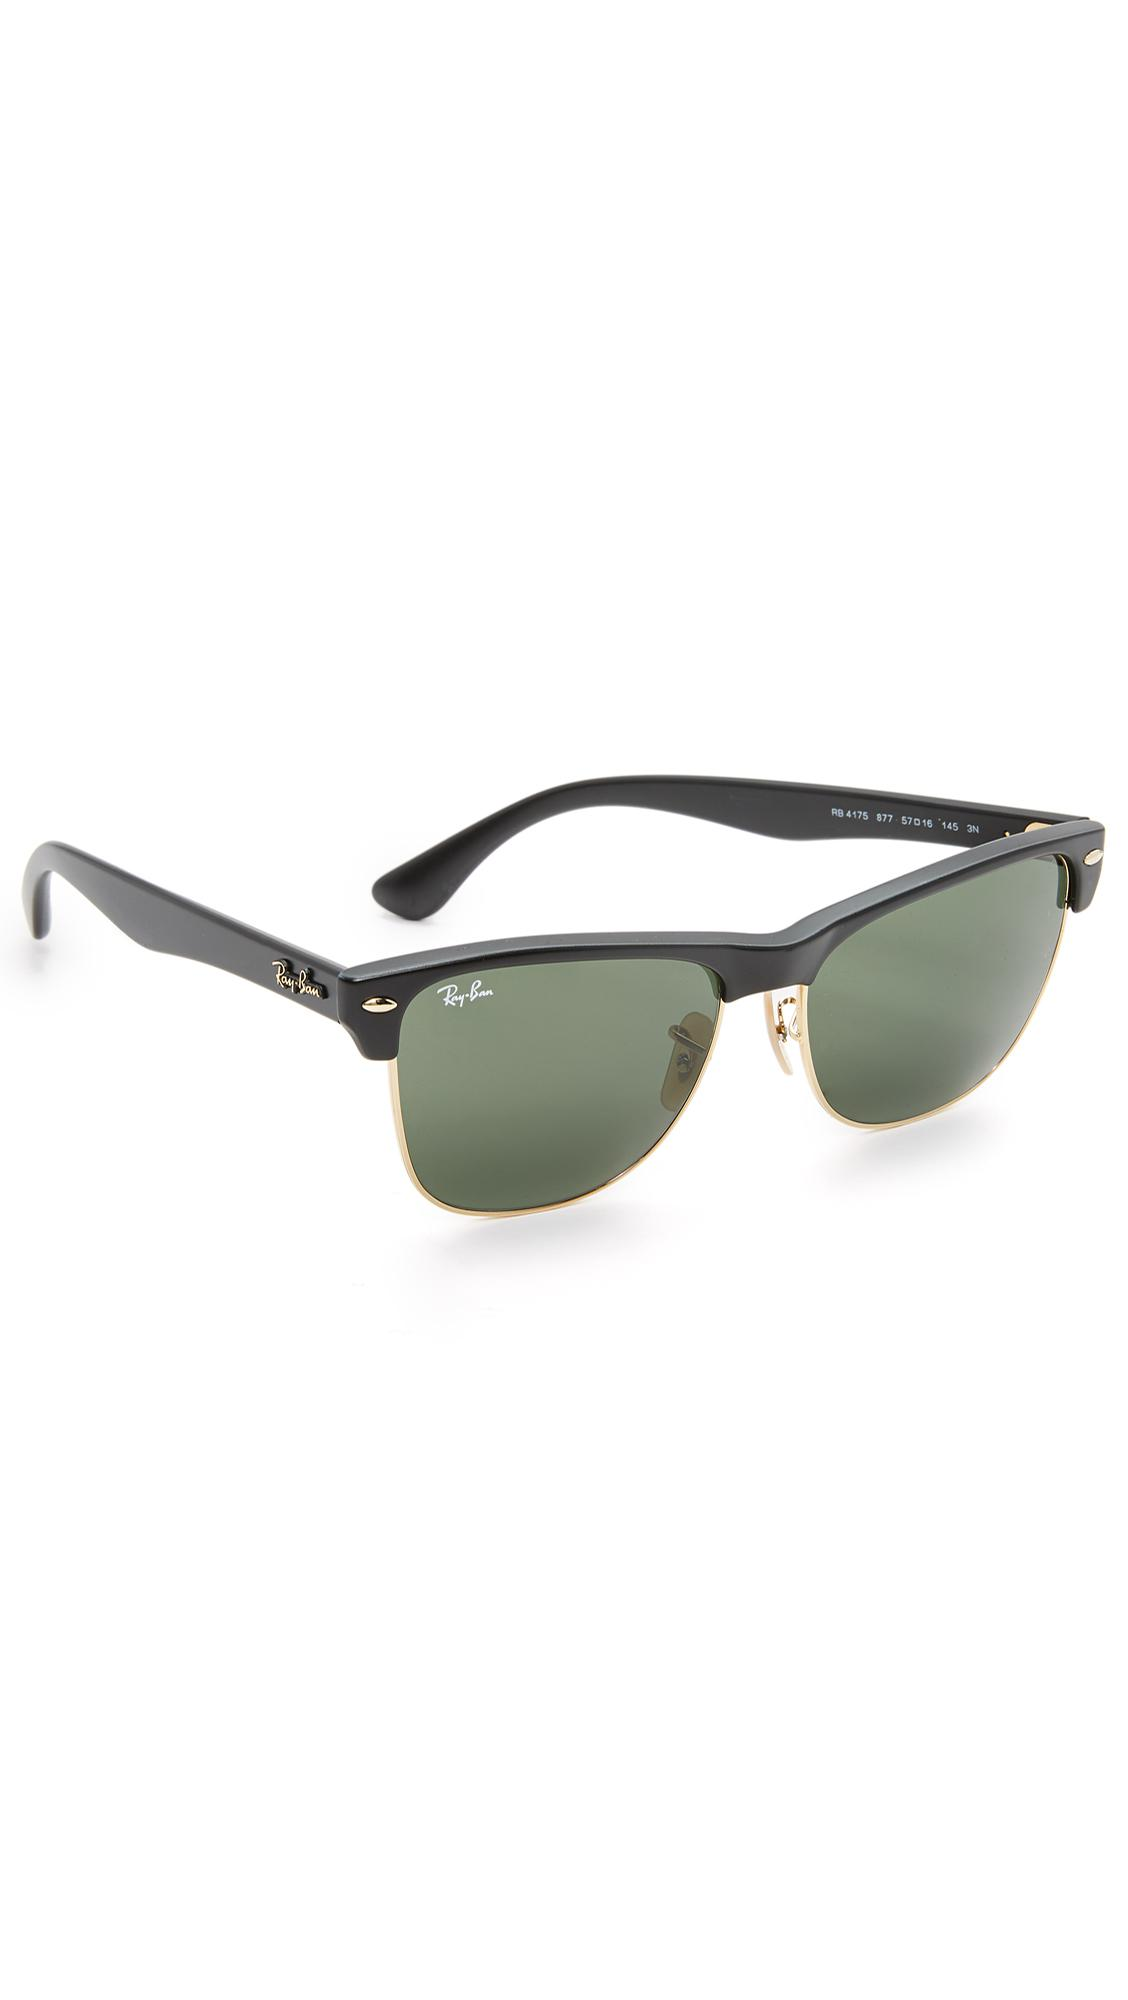 6fb7ba9f0aa Ray-Ban Clubmaster Oversized Sunglasses in Black for Men - Lyst